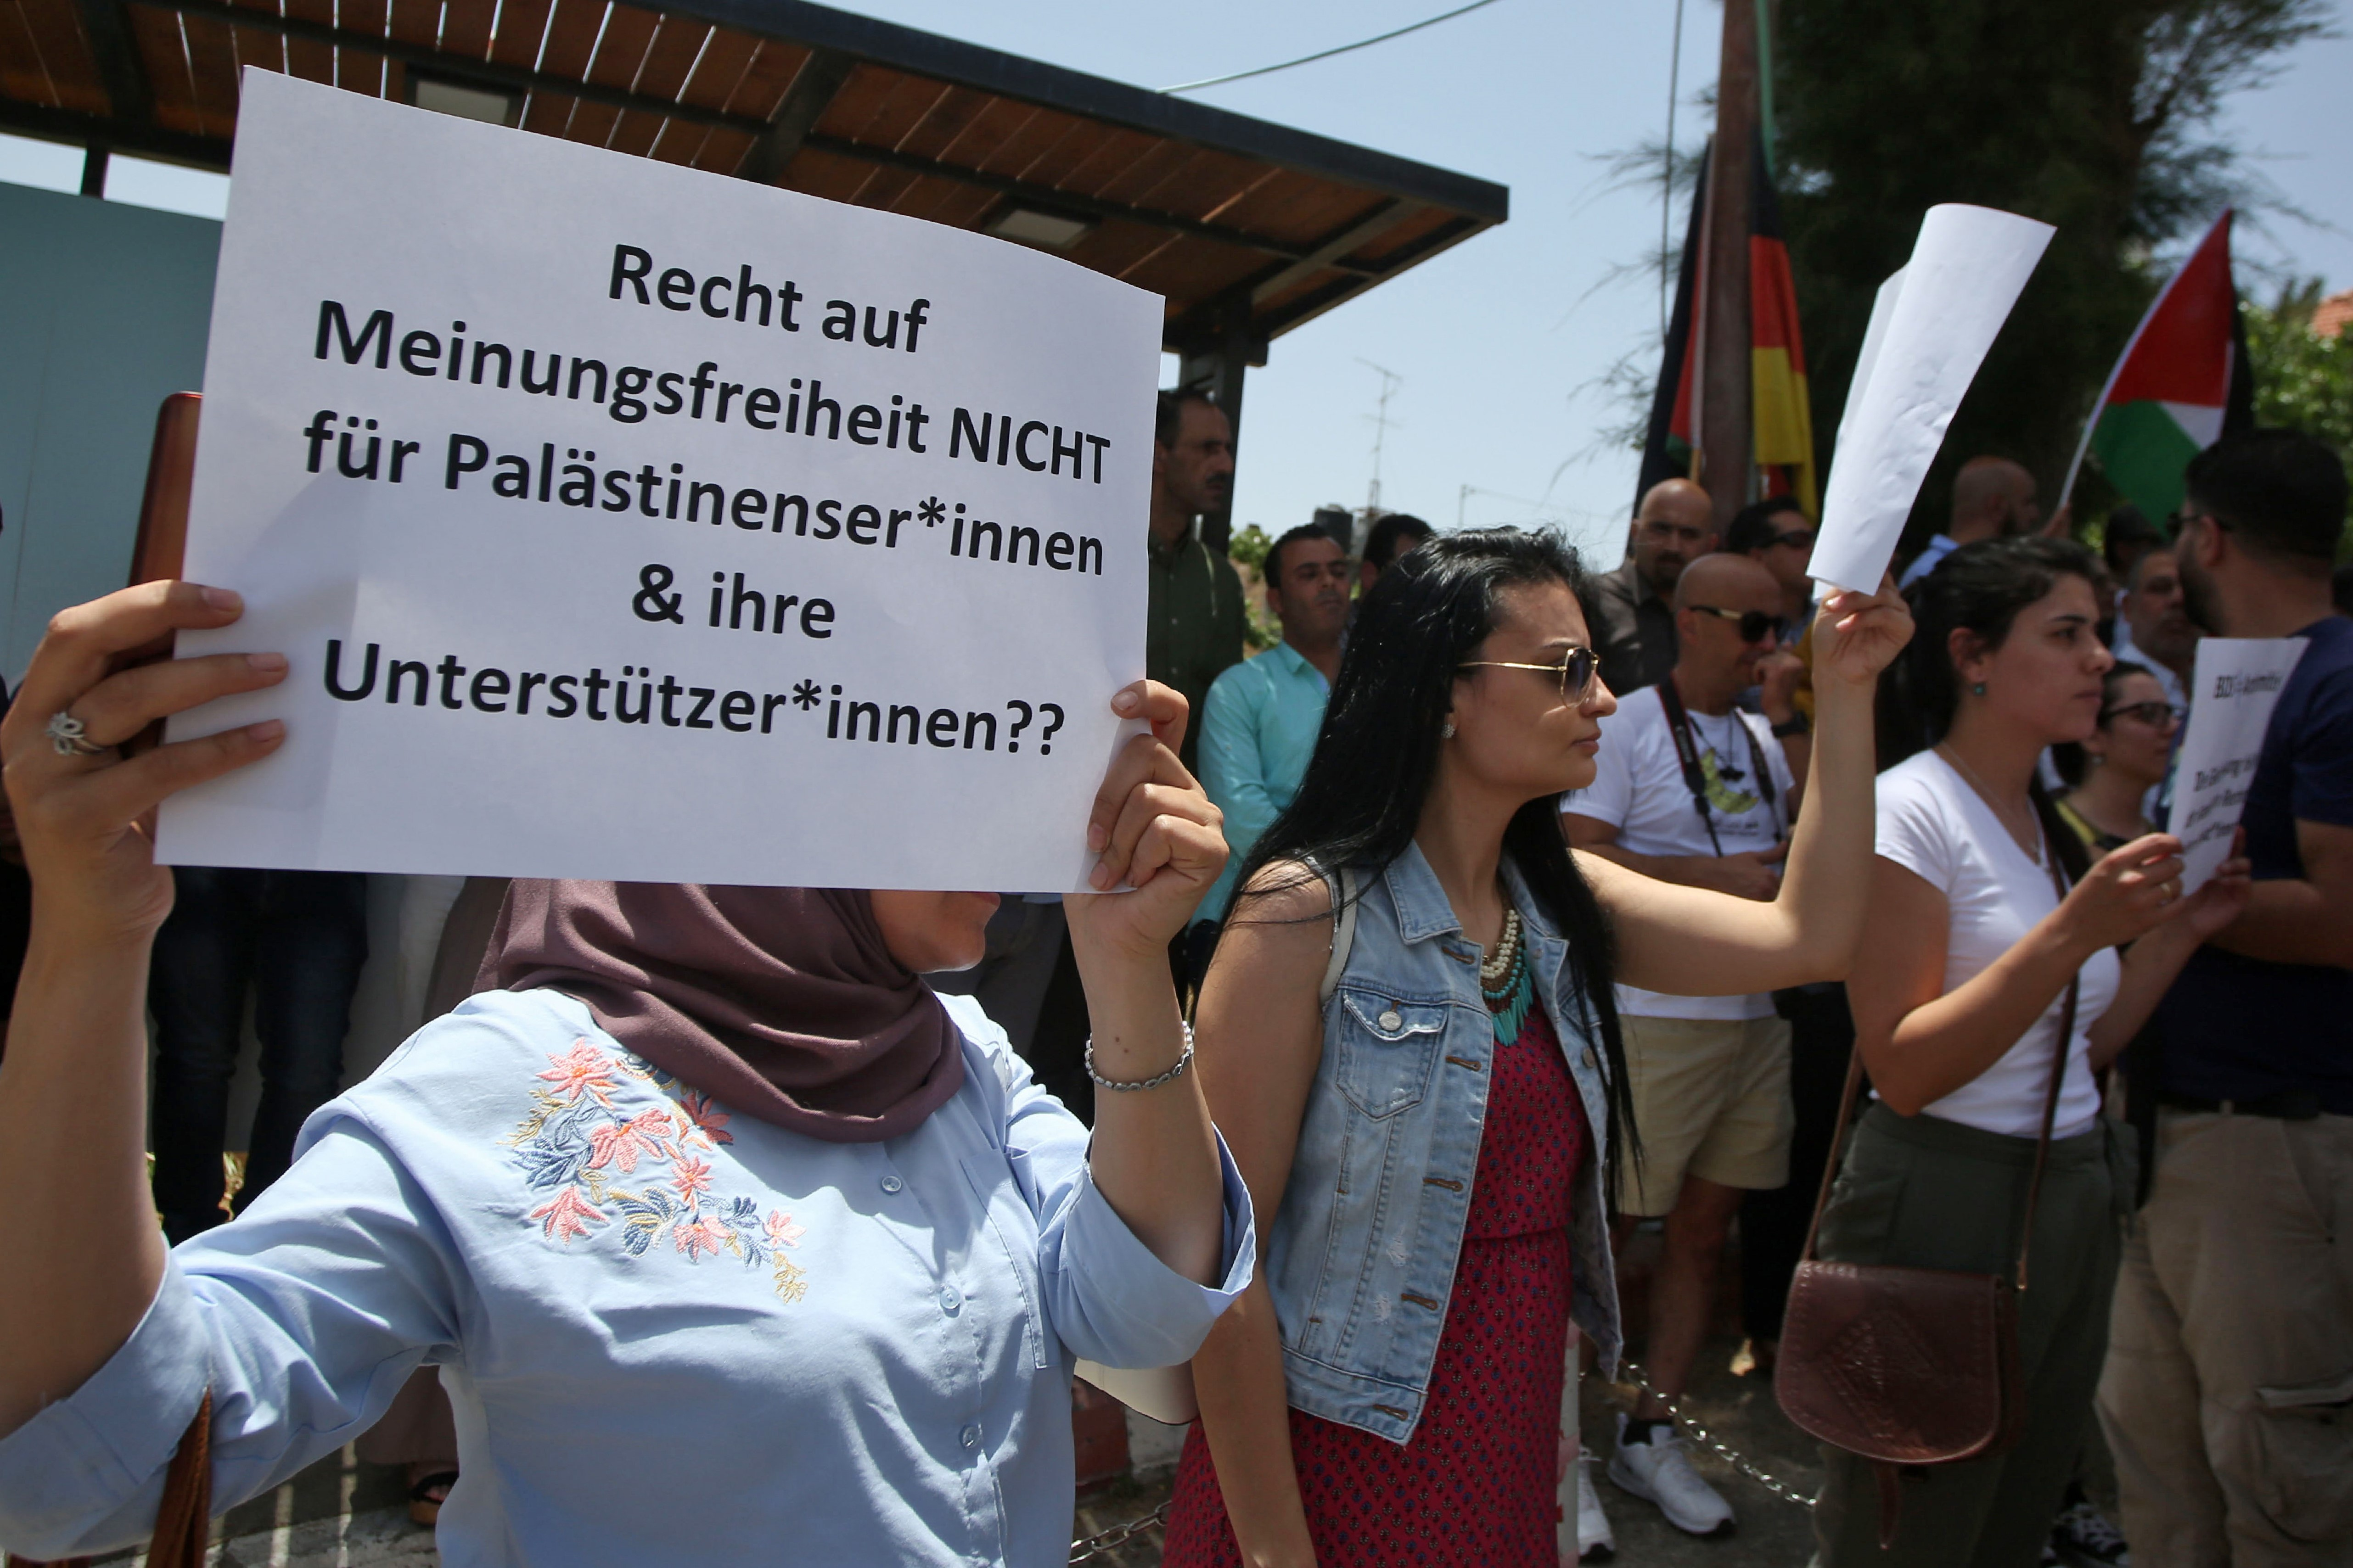 Protesters stage a demonstration outside Germany's Representative Office in Ramallah in the Palestinian West Bank on May 22, 2019, following the Bundestag's (German parliament) condemnation of the Boycott, Divestment, Sanctions (BDS) movement as anti-Semitic.